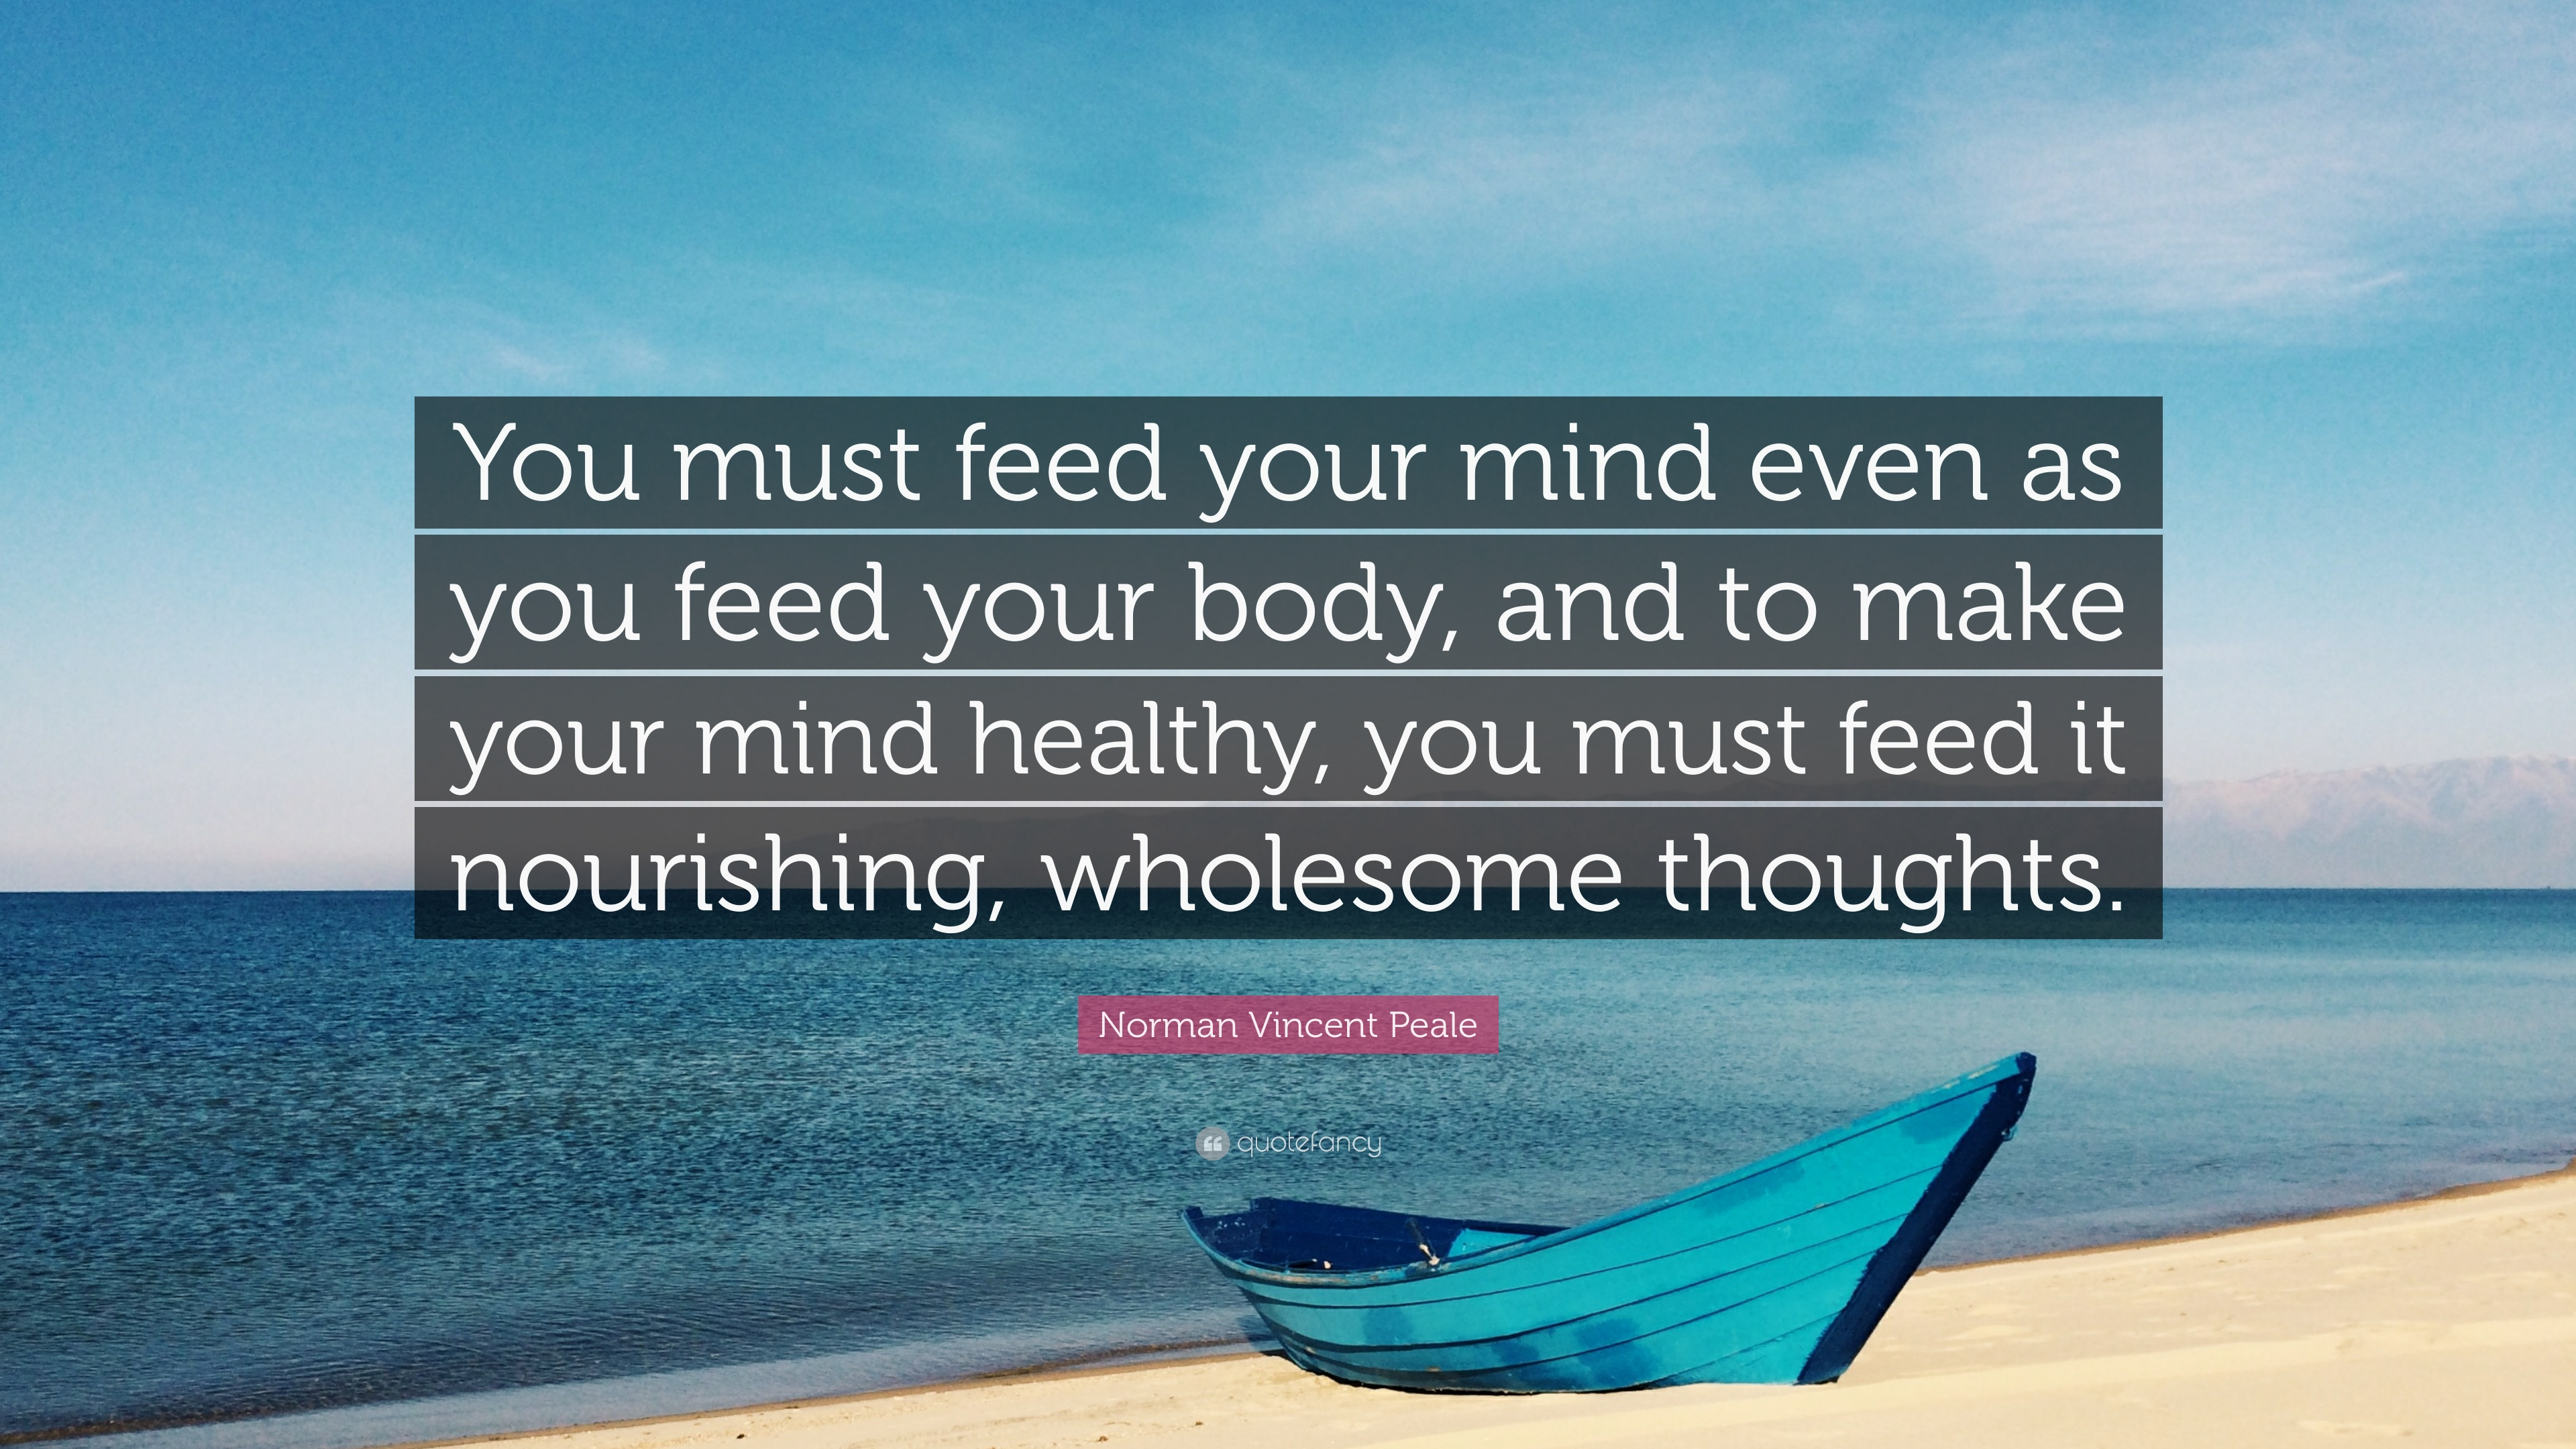 Norman Vincent Peale Quote You Must Feed Your Mind Even As You